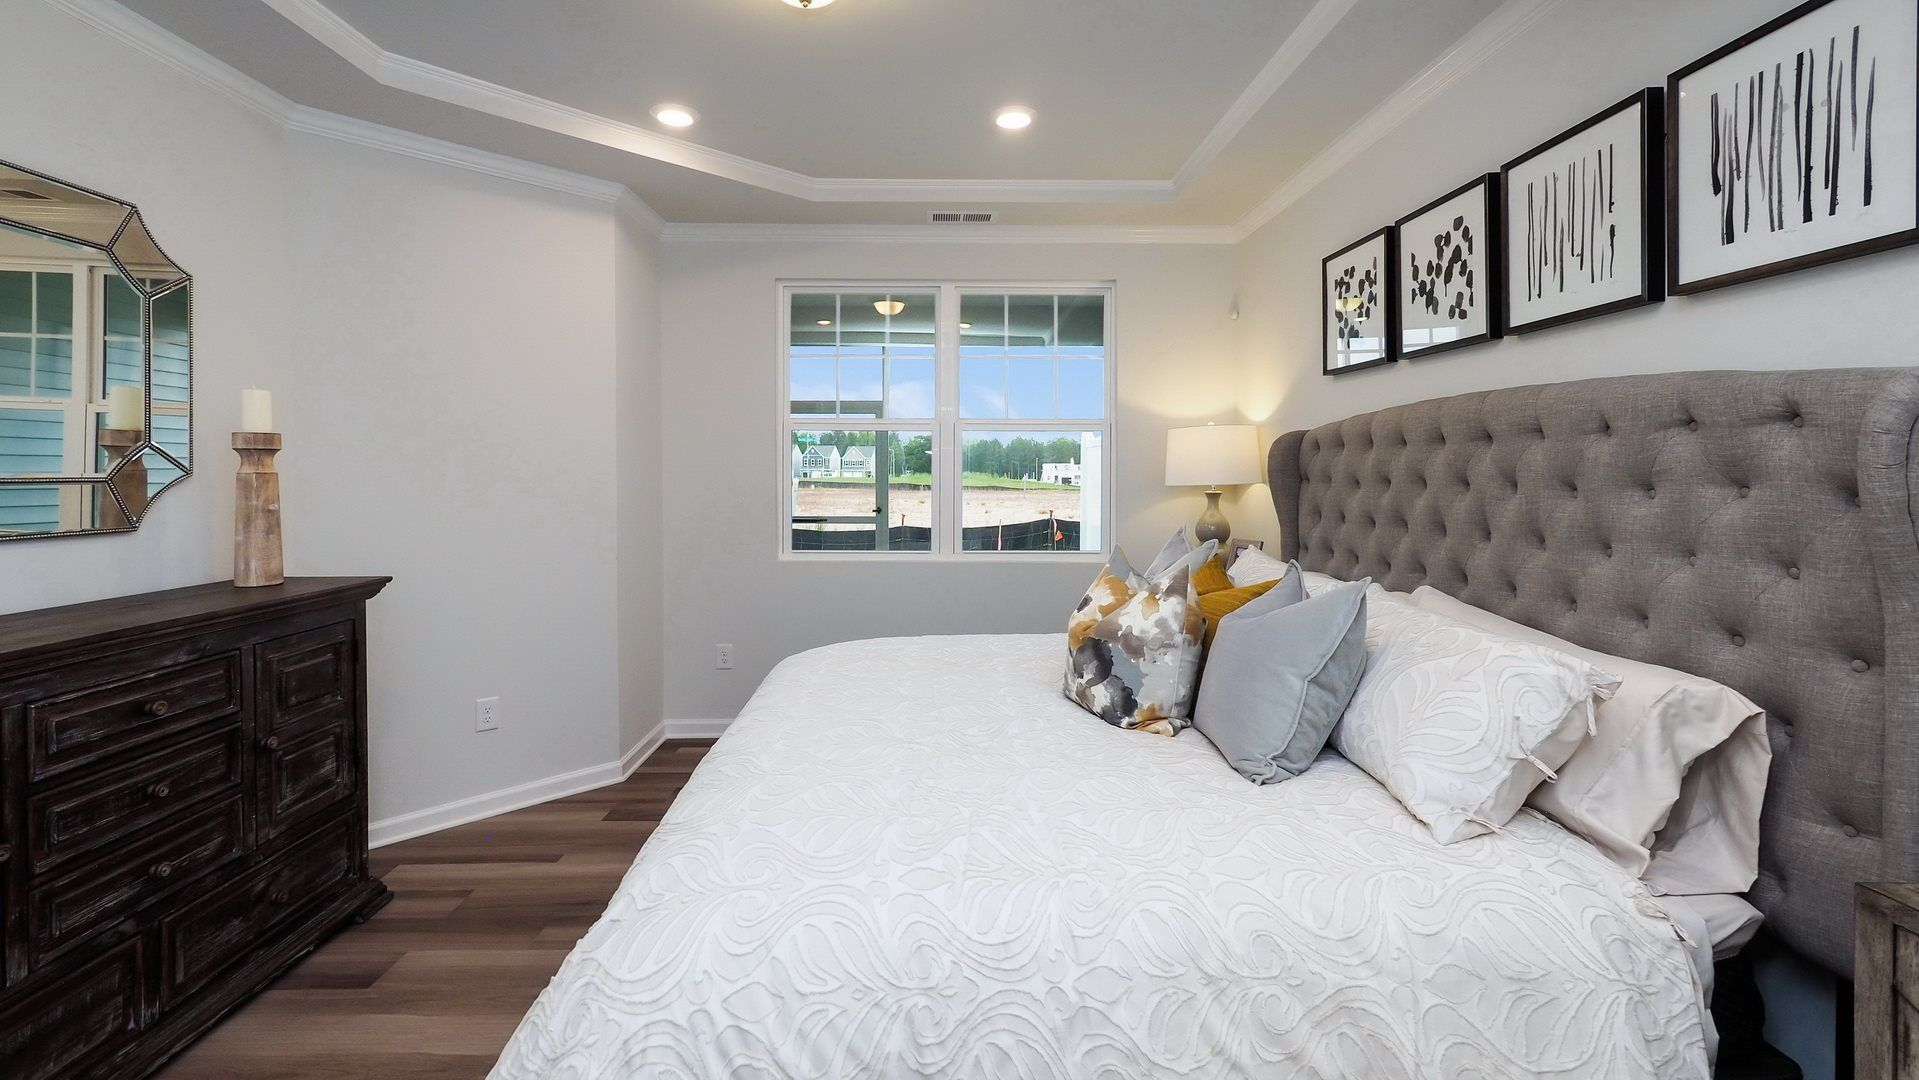 Bedroom featured in the Belmont End II By Lennar in Raleigh-Durham-Chapel Hill, NC